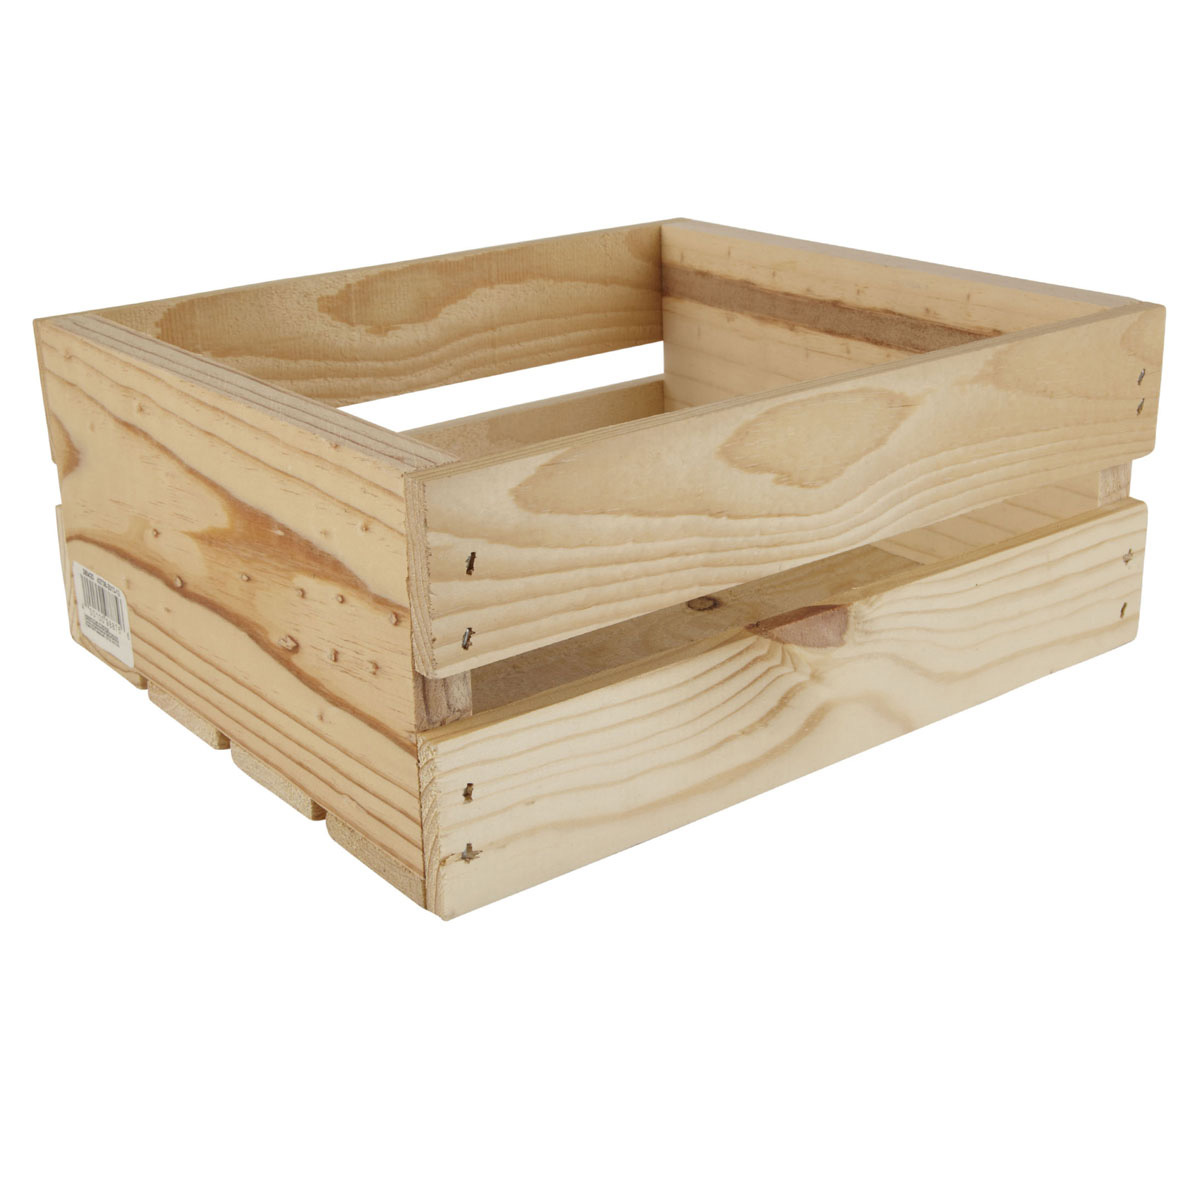 Crate boxes sale rustic wood crates rope handles shelves for Vintage crates cheap